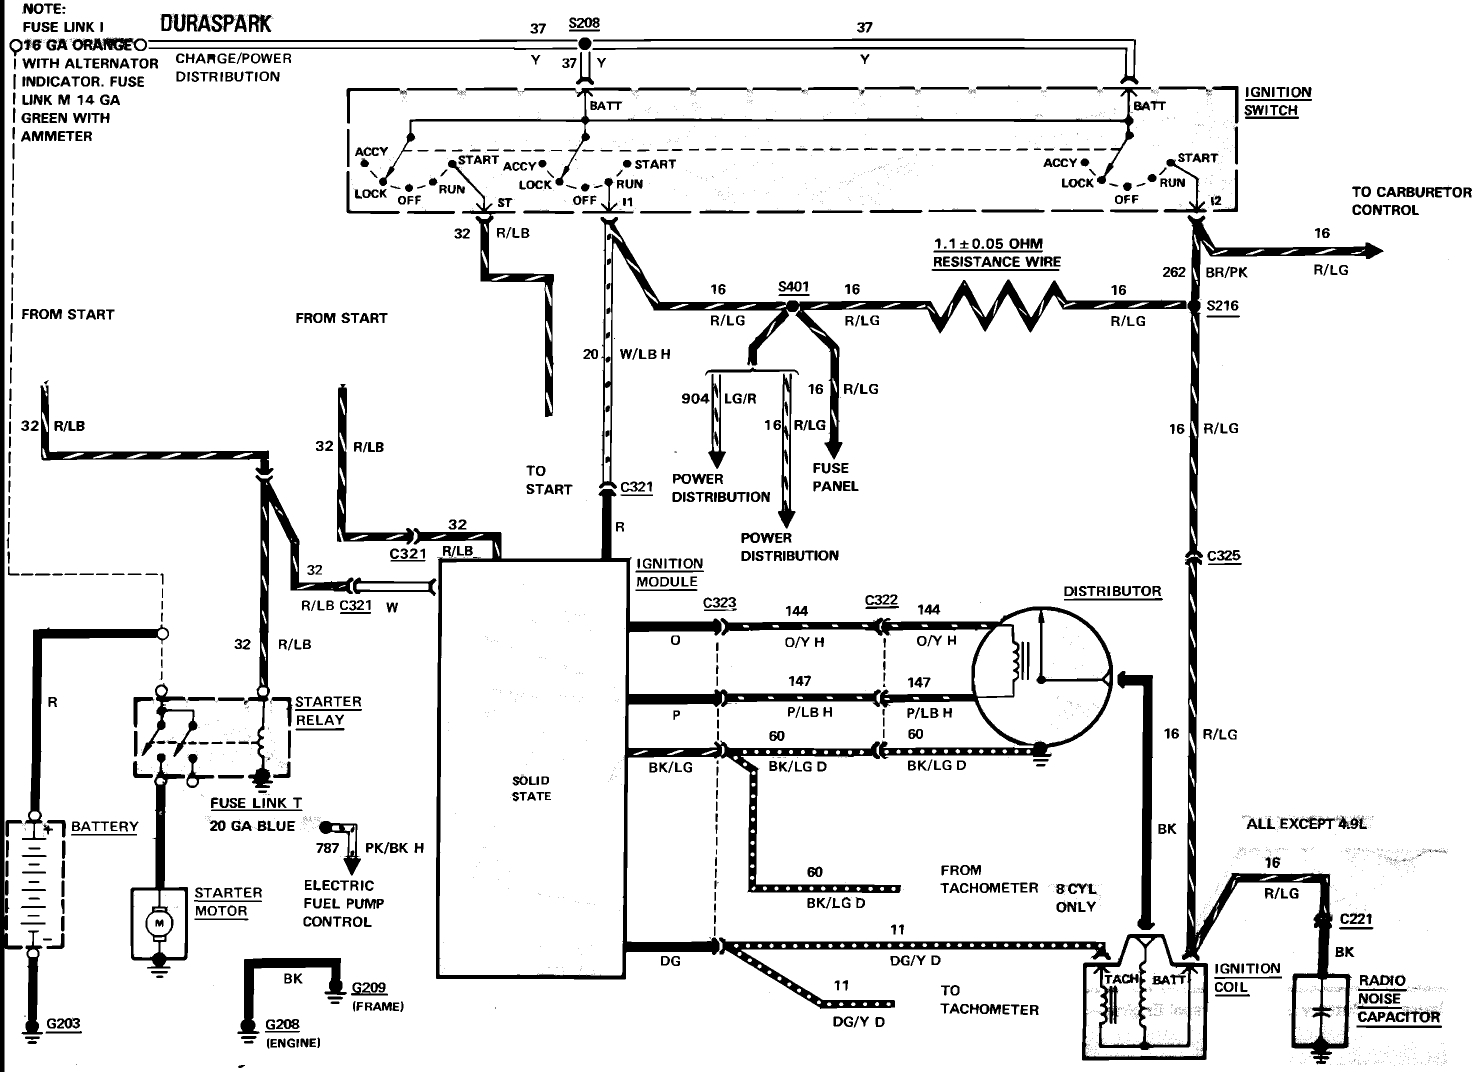 DIAGRAM] Oven Igniter Wiring Diagram FULL Version HD Quality ... on